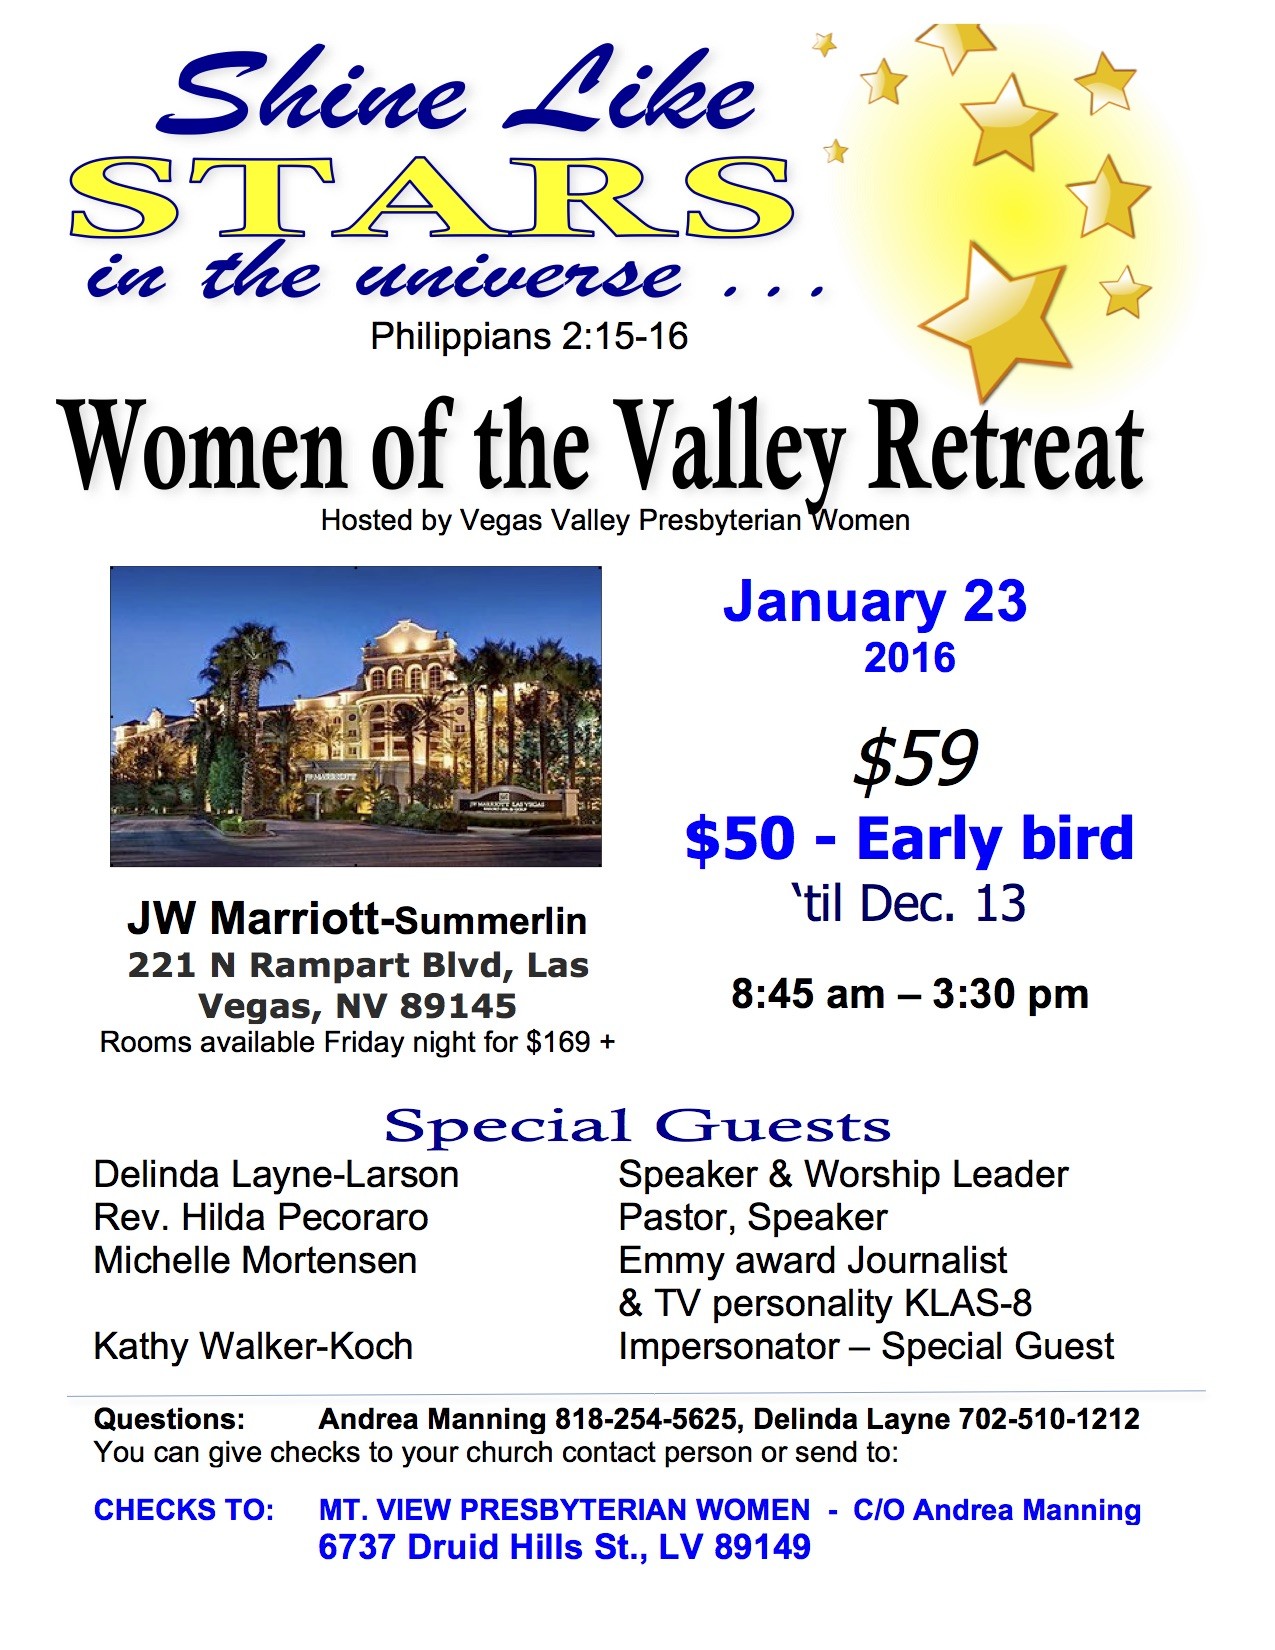 Women of the Valley -2016 Retreat-FLYER